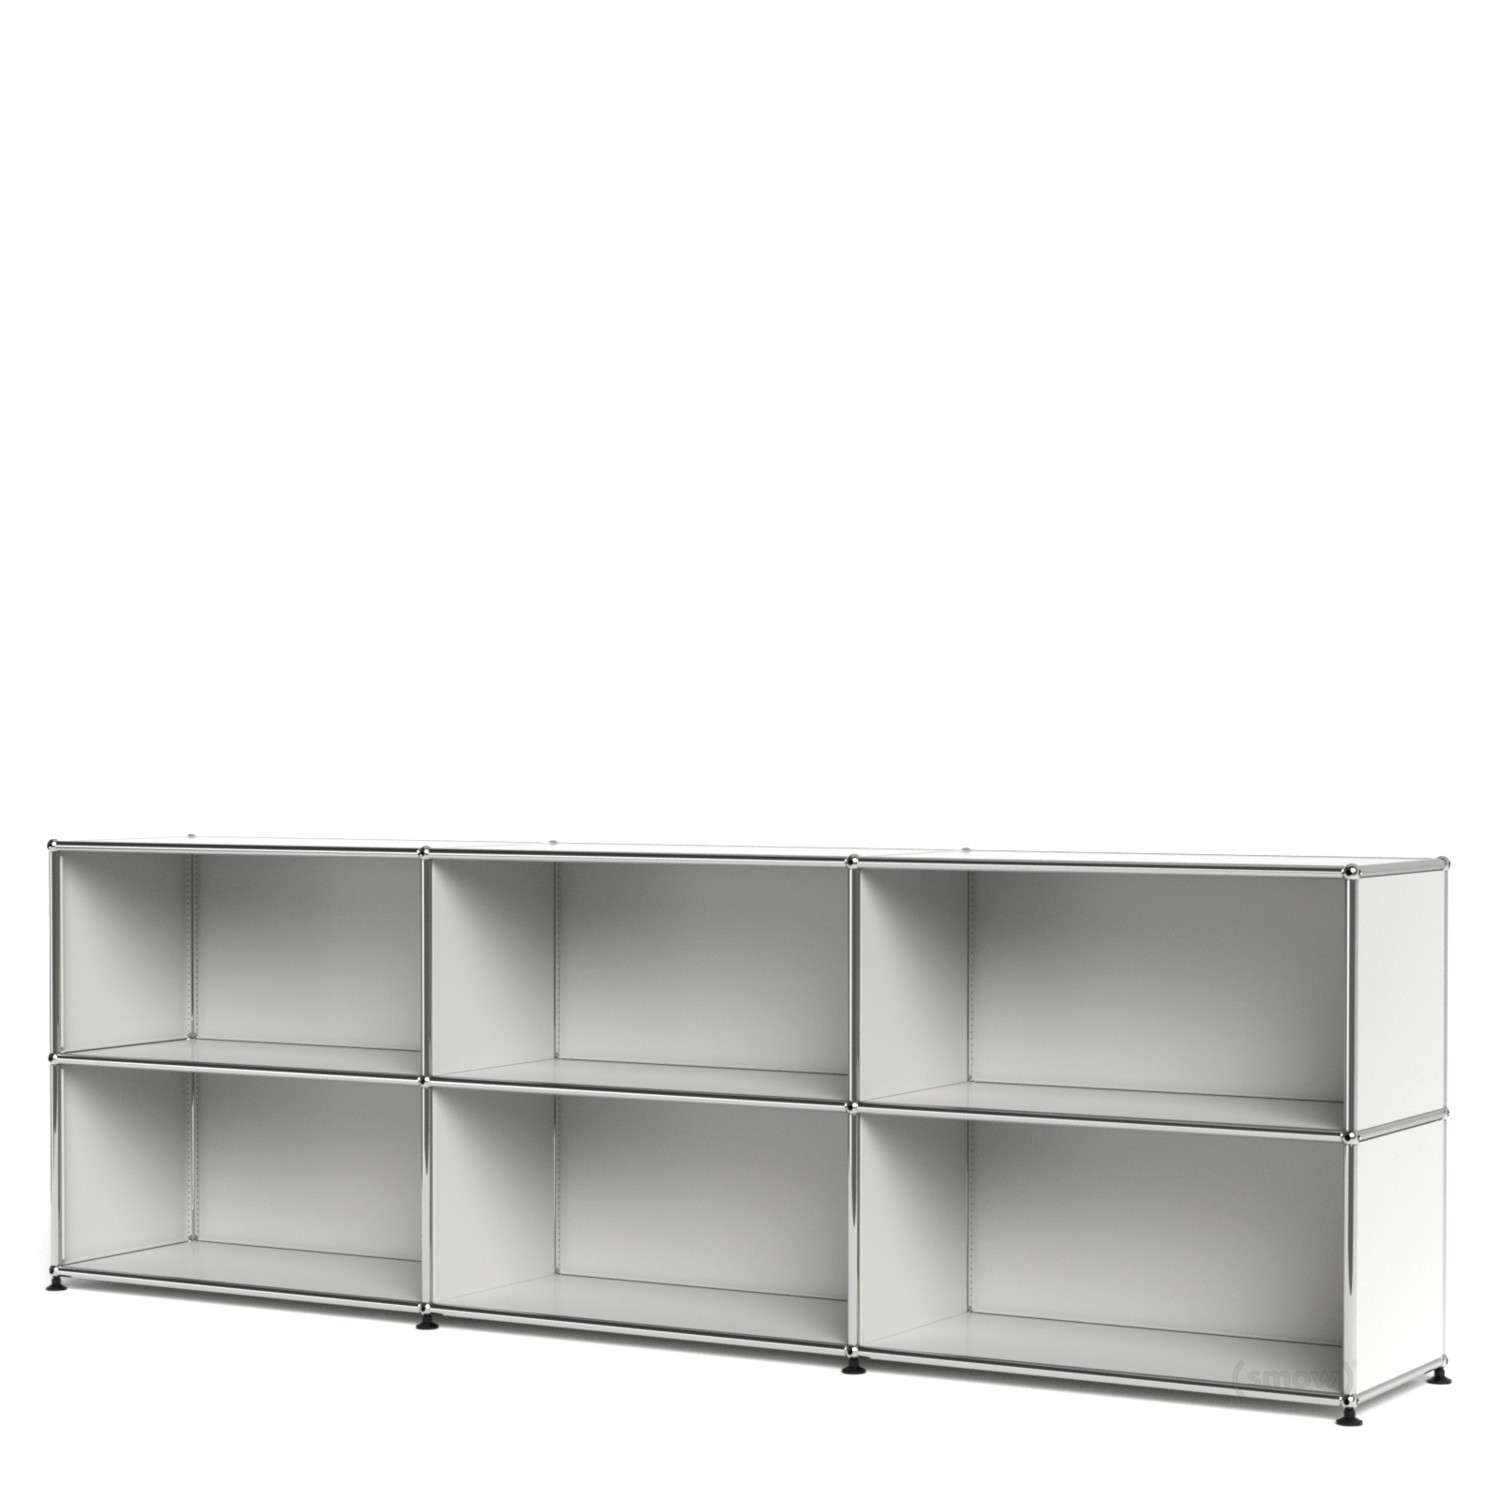 Usm haller sideboard xl customisable pure white ral 9010 for Sideboard usm